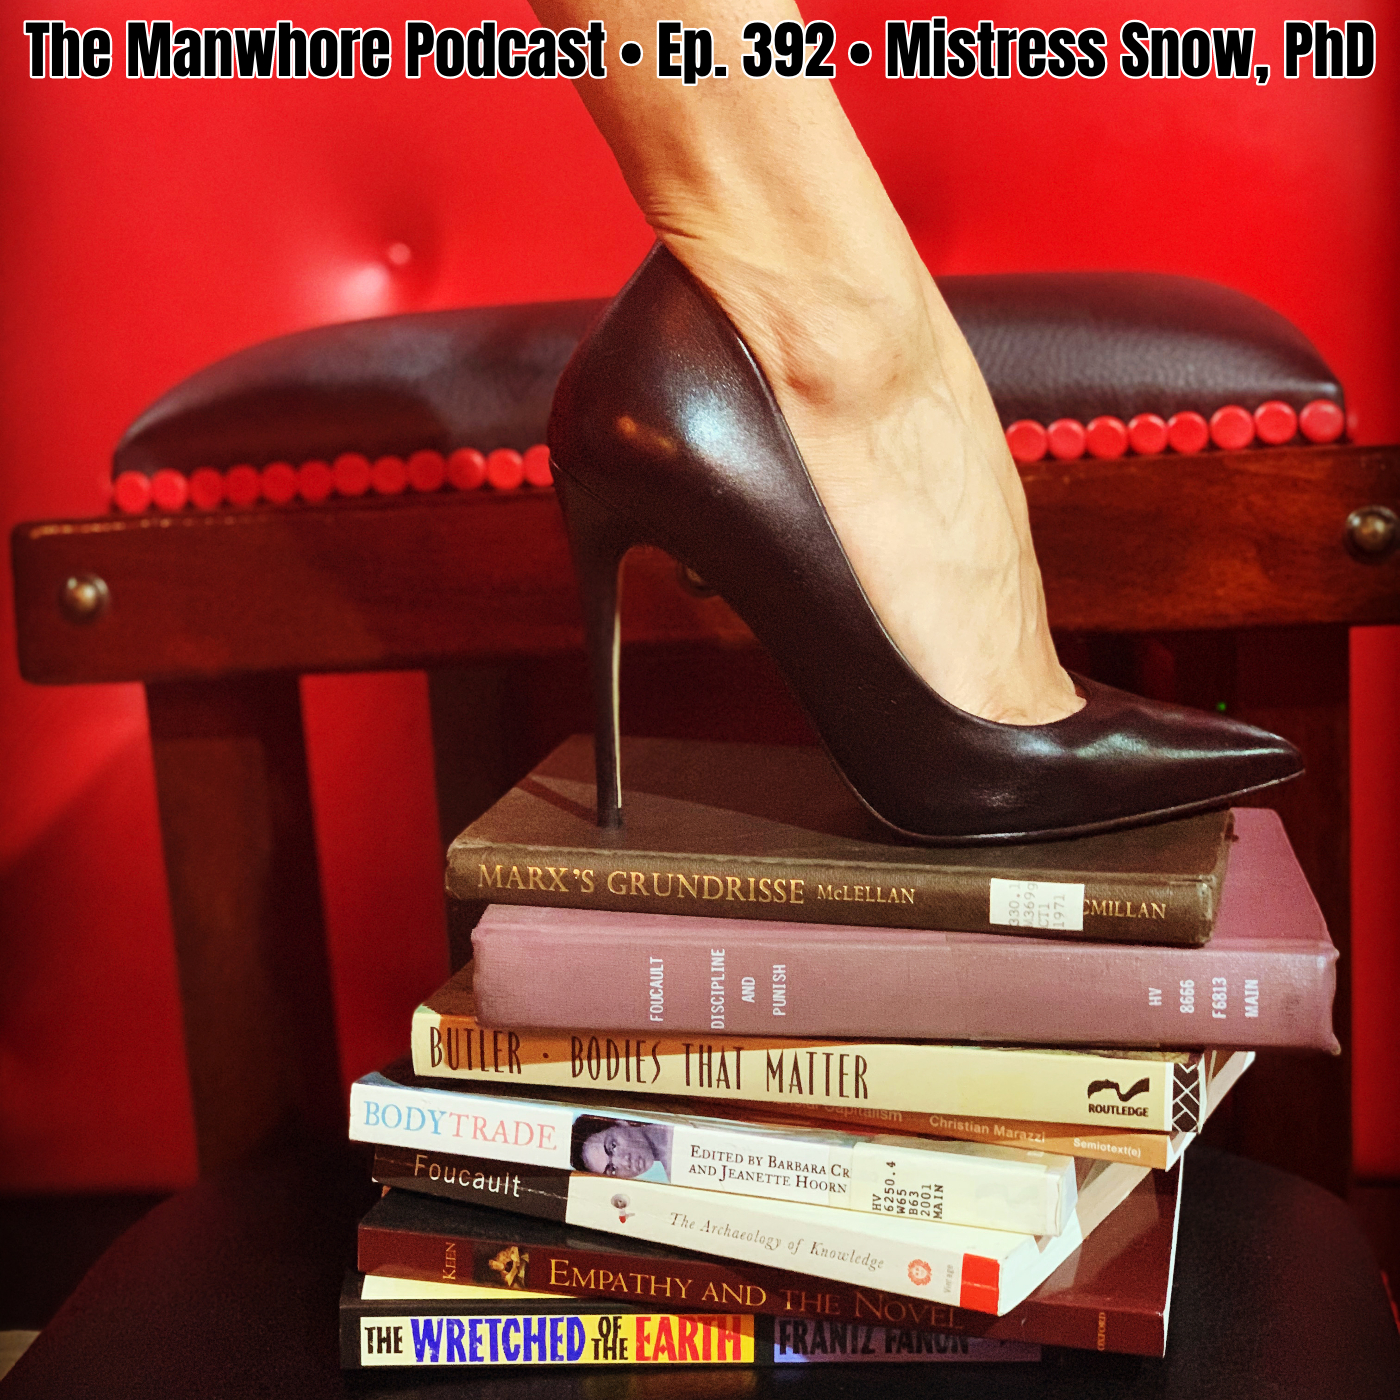 The Manwhore Podcast: A Sex-Positive Quest - Ep. 392: Dungeons, Domming, and Doxing with Mistress Snow PhD